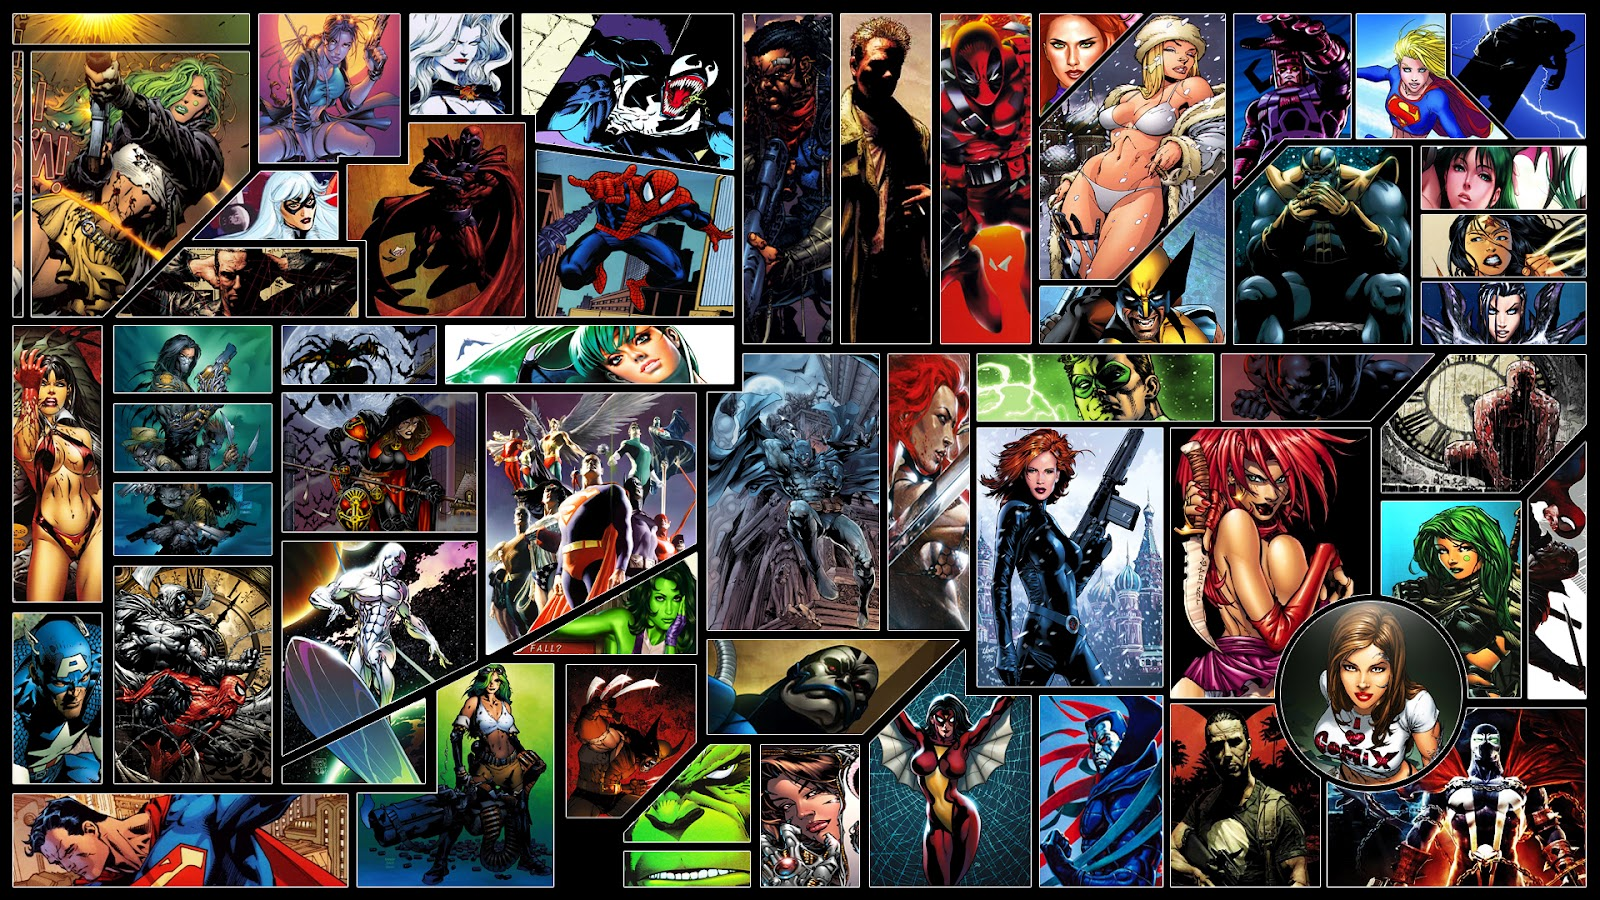 wallpaper Hd Wallpaper Marvel Comics 1600x900